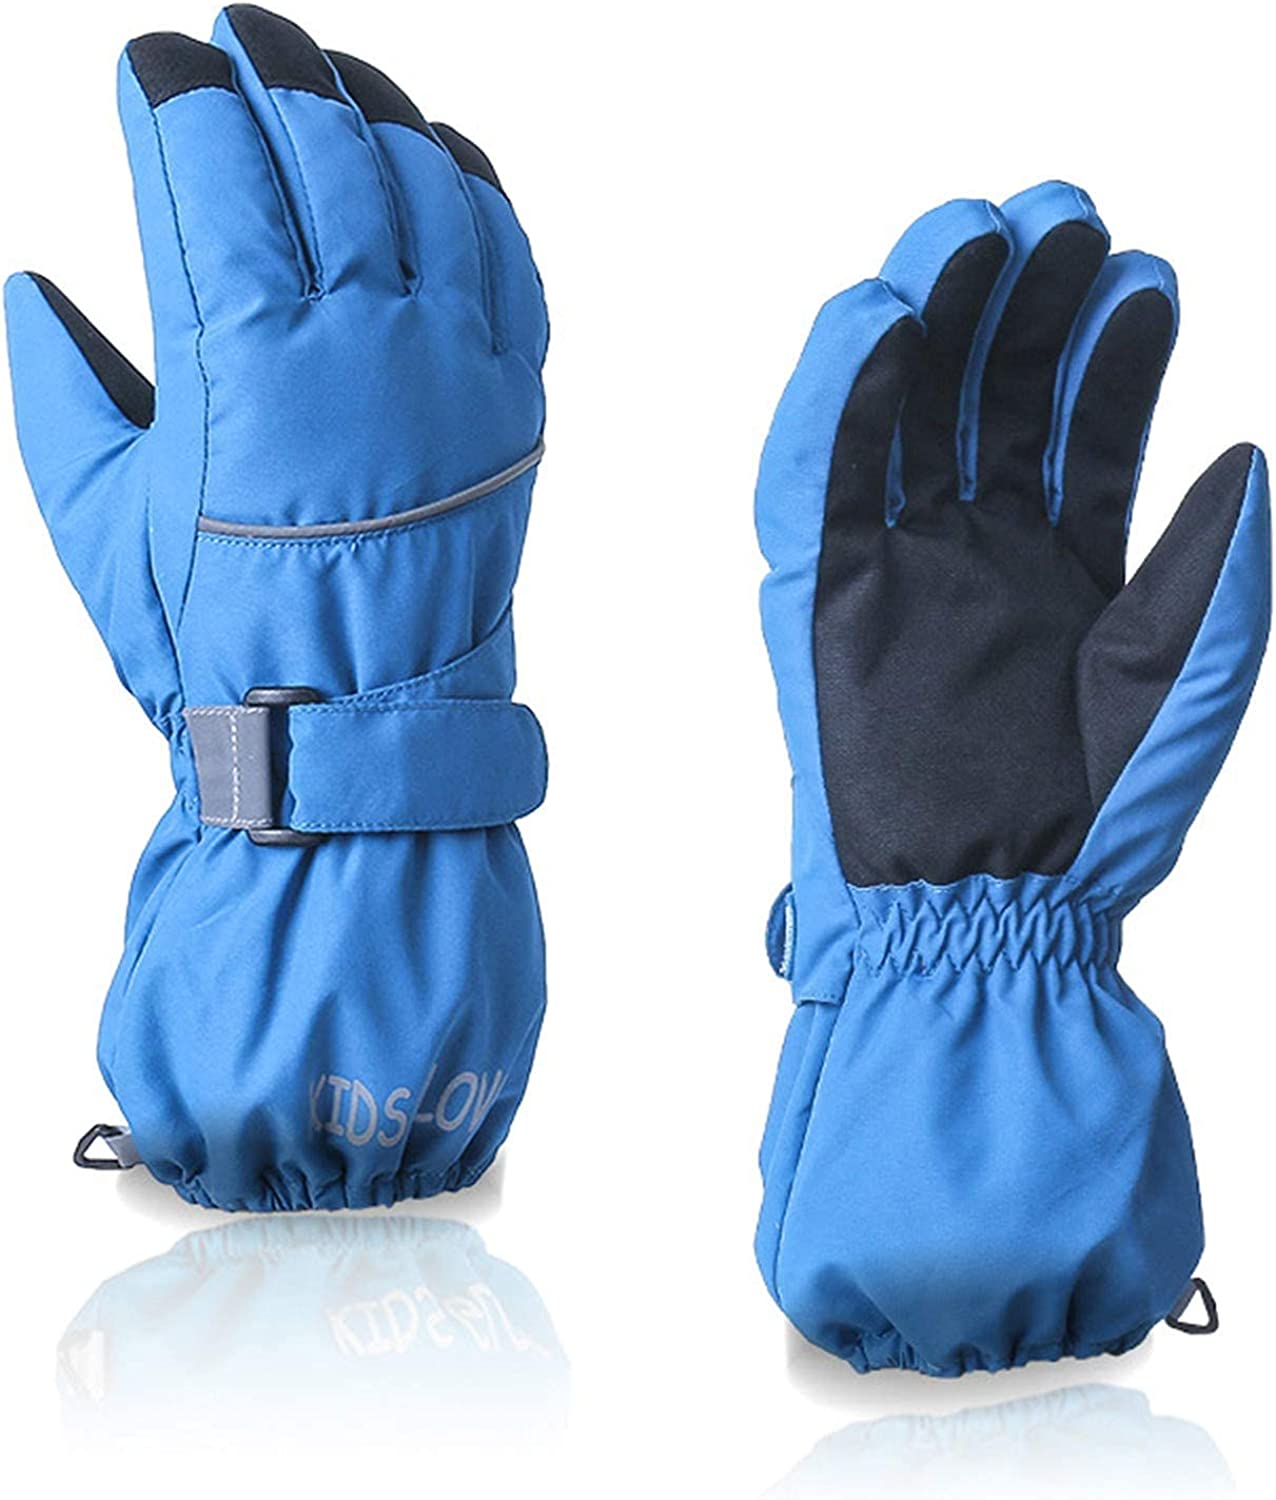 hangZUYy Kids Child Ski Gloves, Full Finger Mittens, Waterproof Windproof Winter Warm Gloves for Skiing/Cycling Children Mittens for 4 to 6 Years